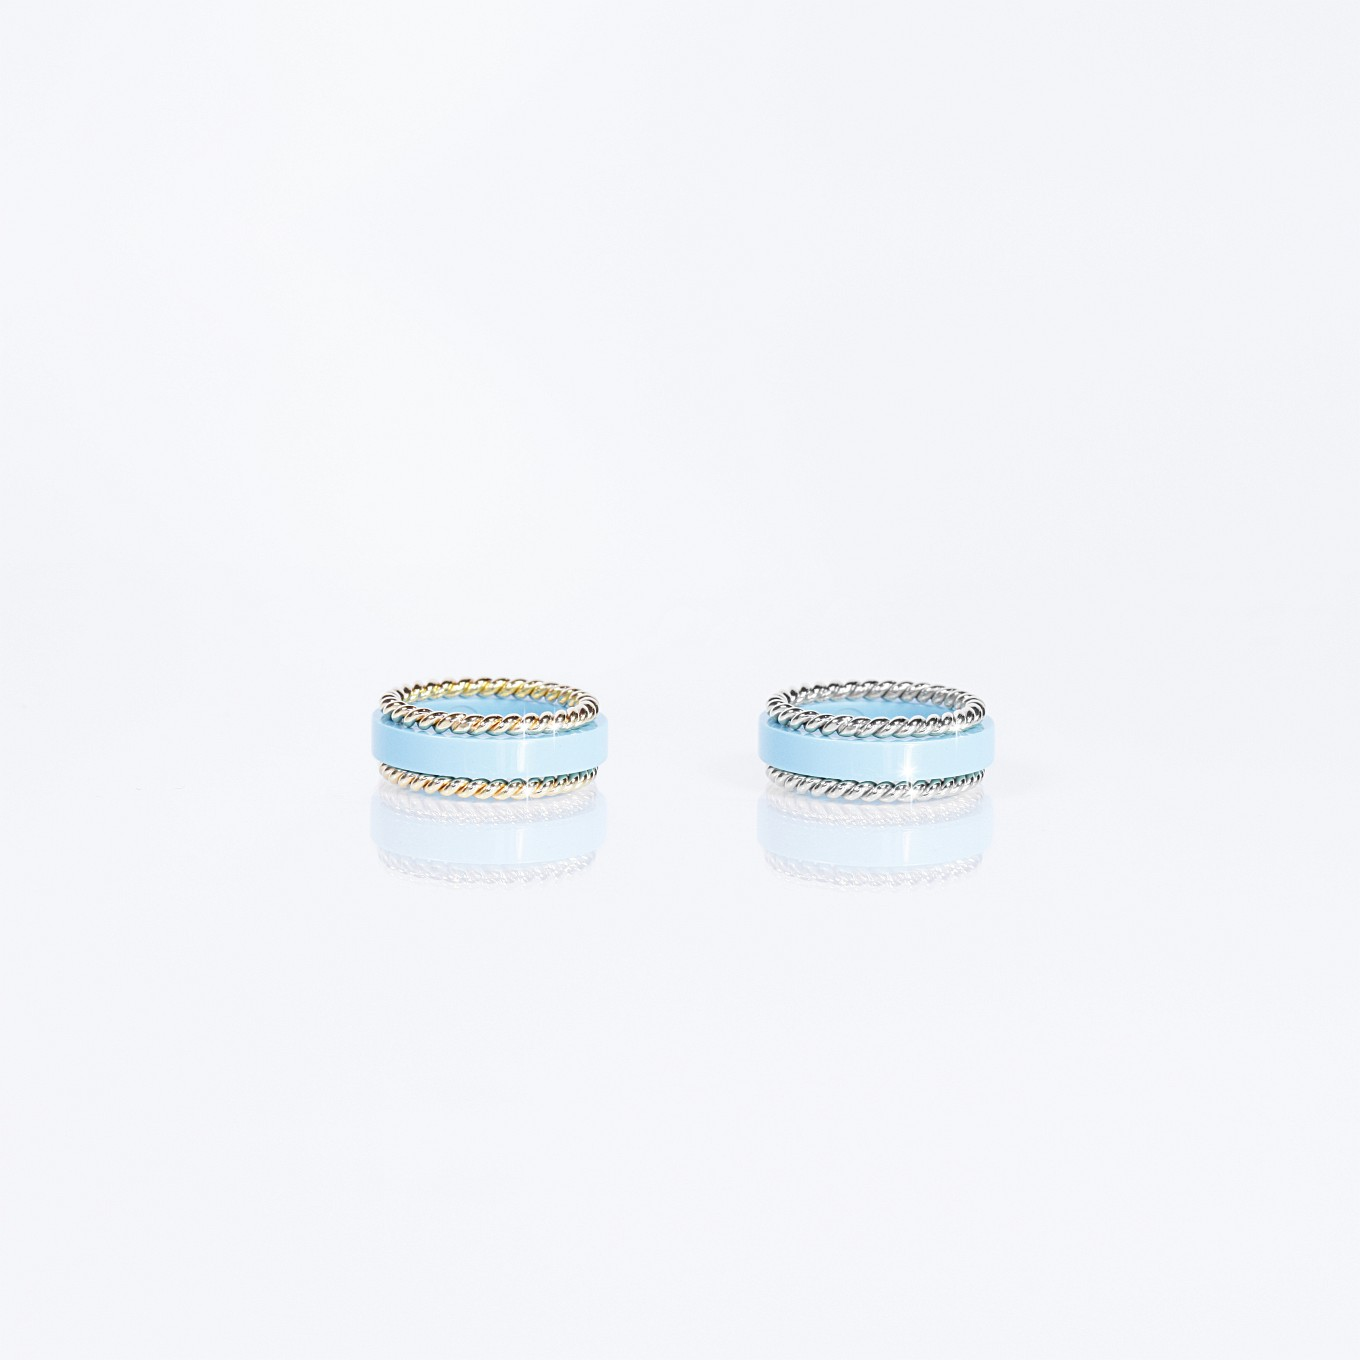 HARDSTONE & BRAIDED BANDS IN STERLING SILVER & GOLD. STERLING SILVER BANDS, HARDSTONE BANDS.  GOLD BANDS